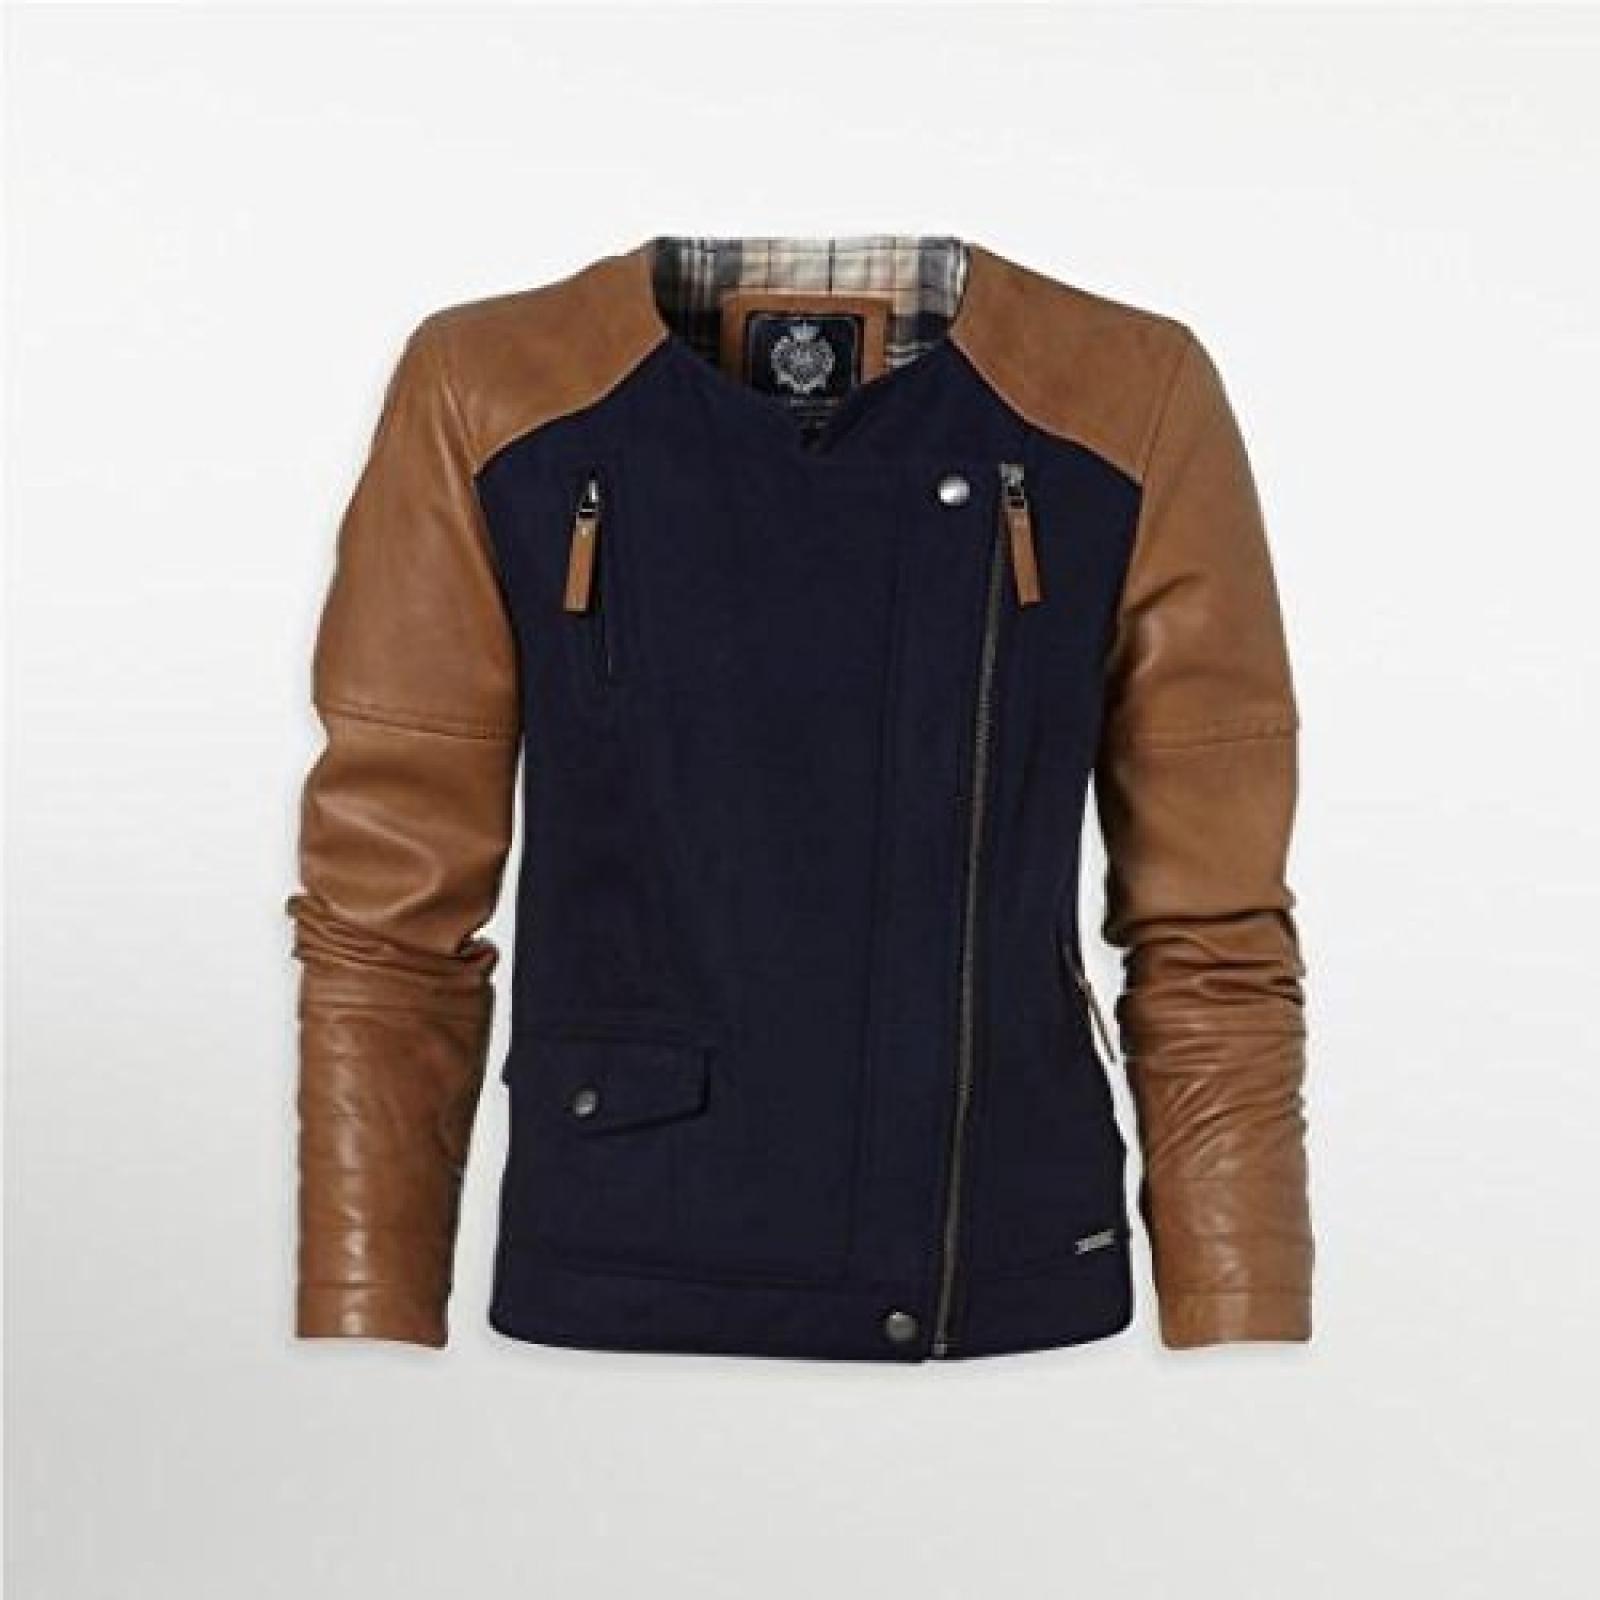 Mcgregor Mix Jacket Damen Jacke